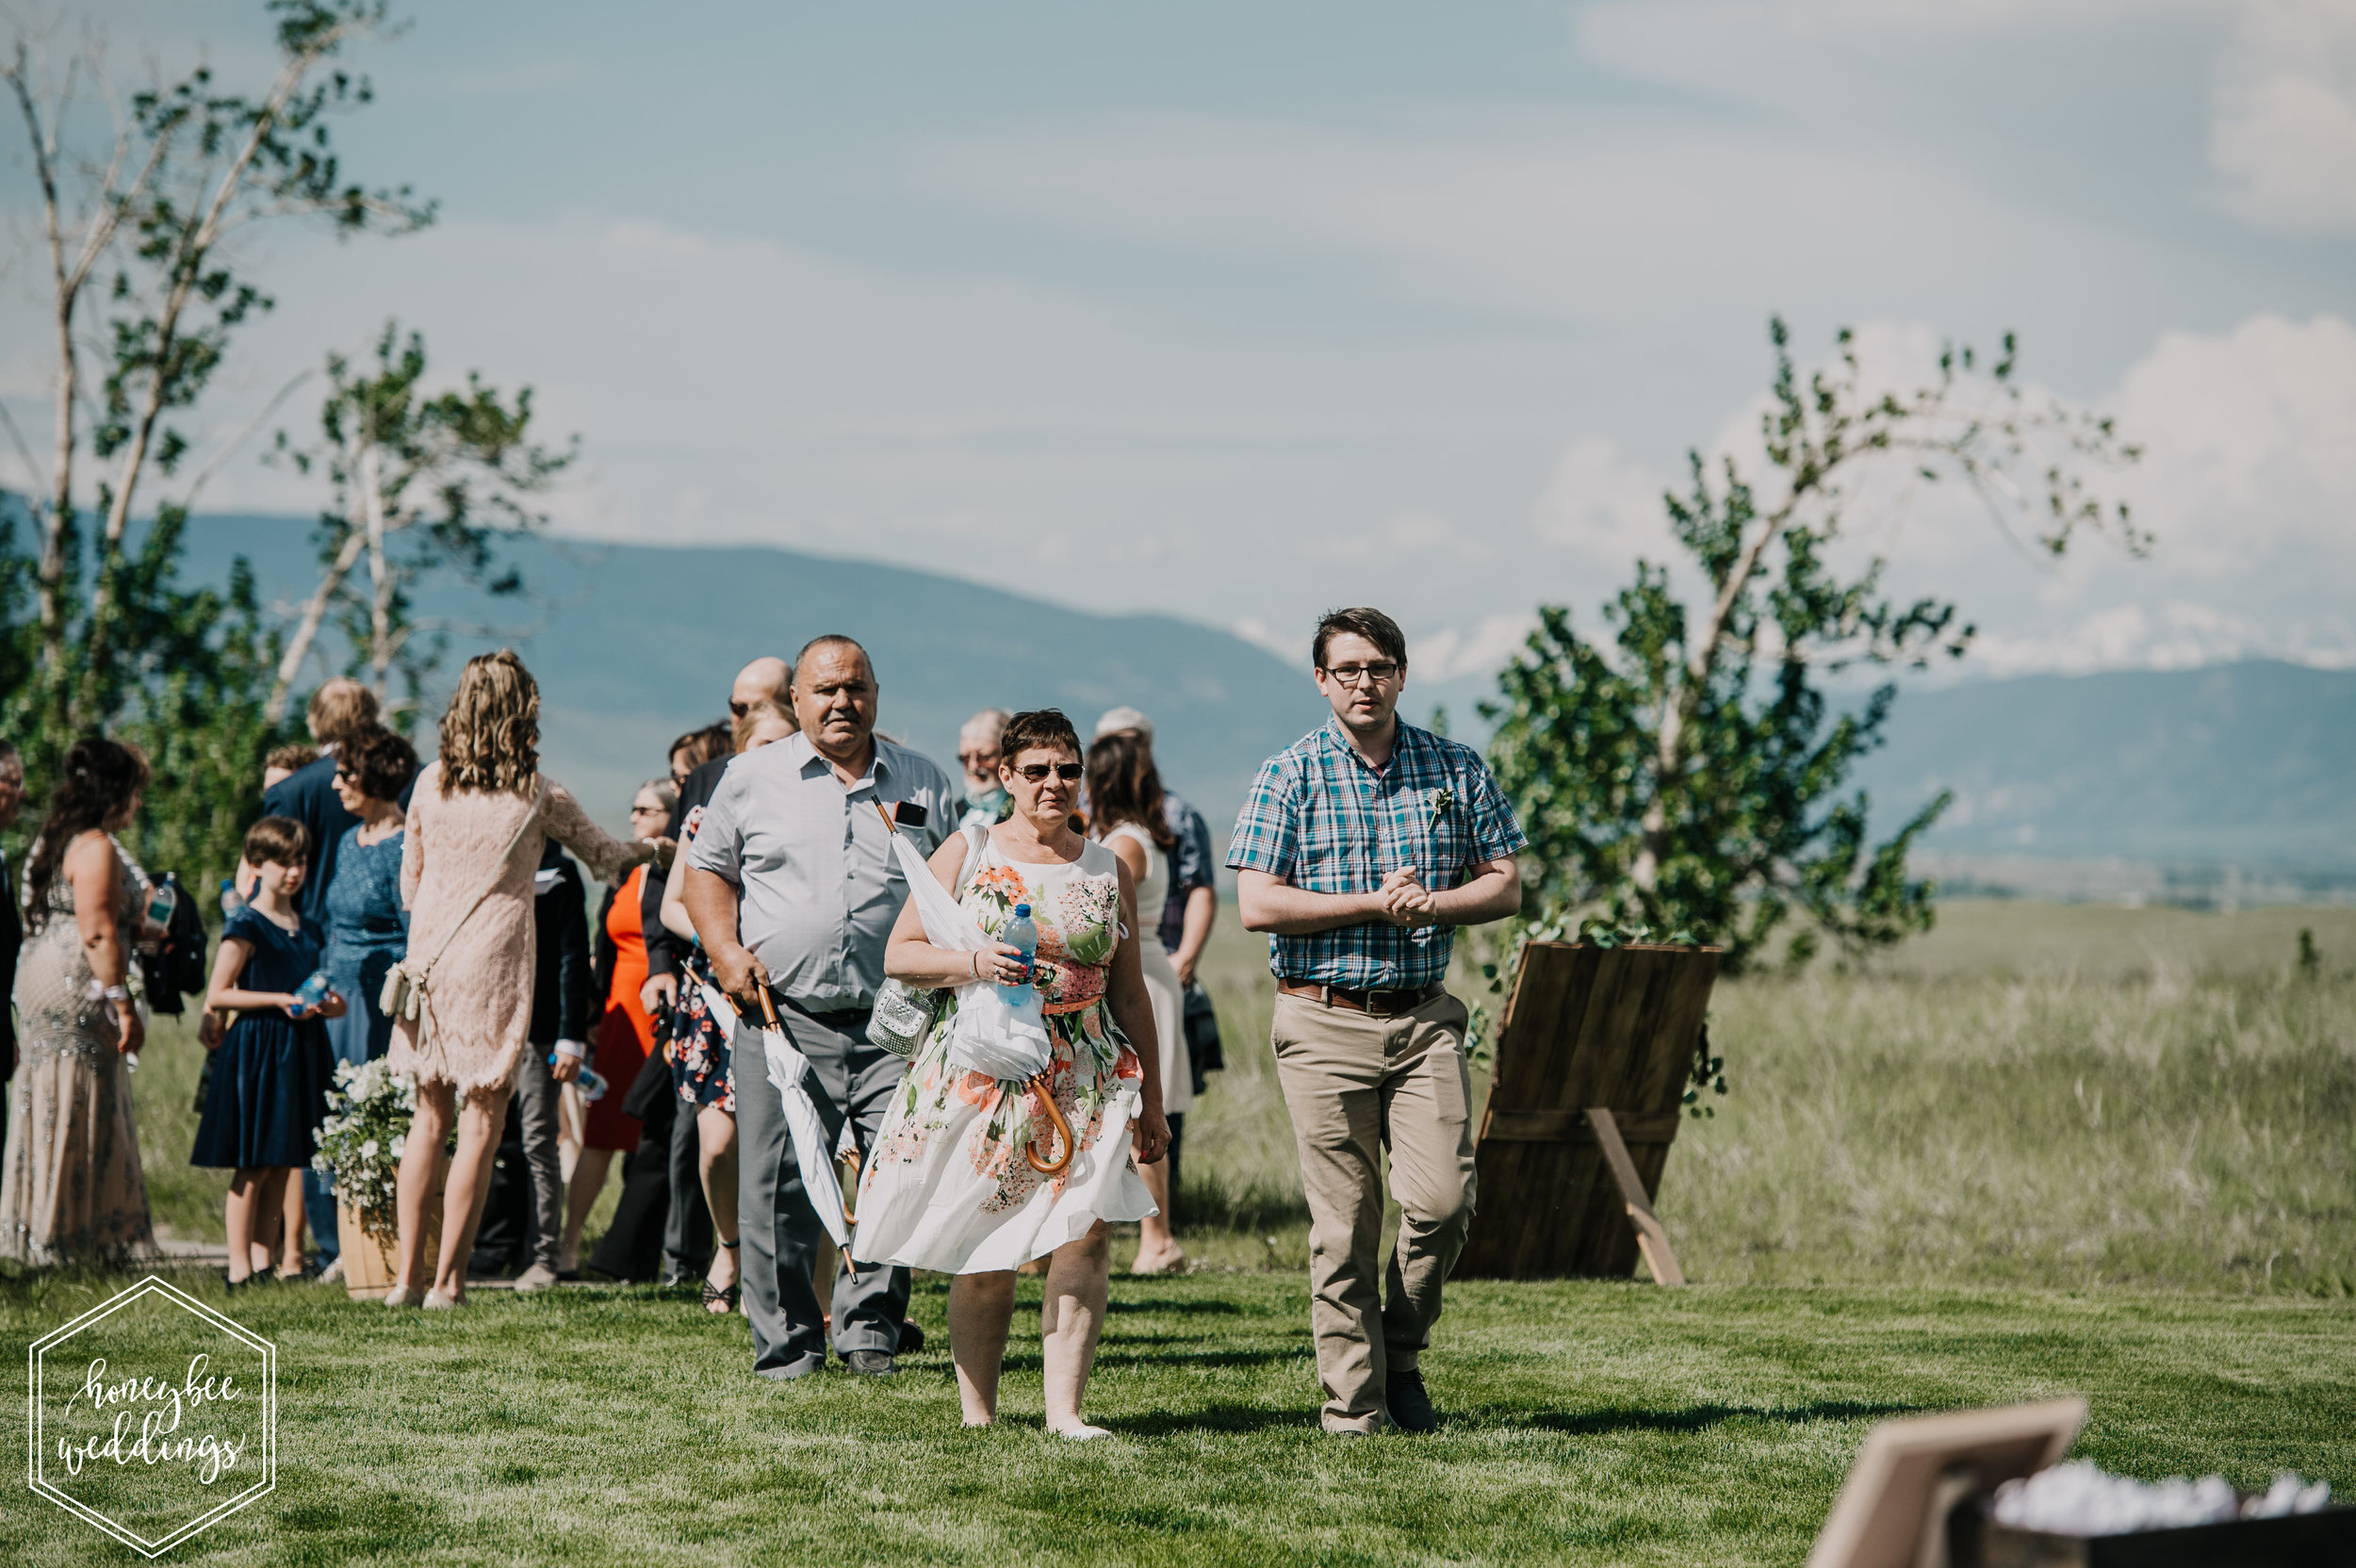 100 Chico Hotsprings Wedding_Bowdino 2018-3249-2.jpg